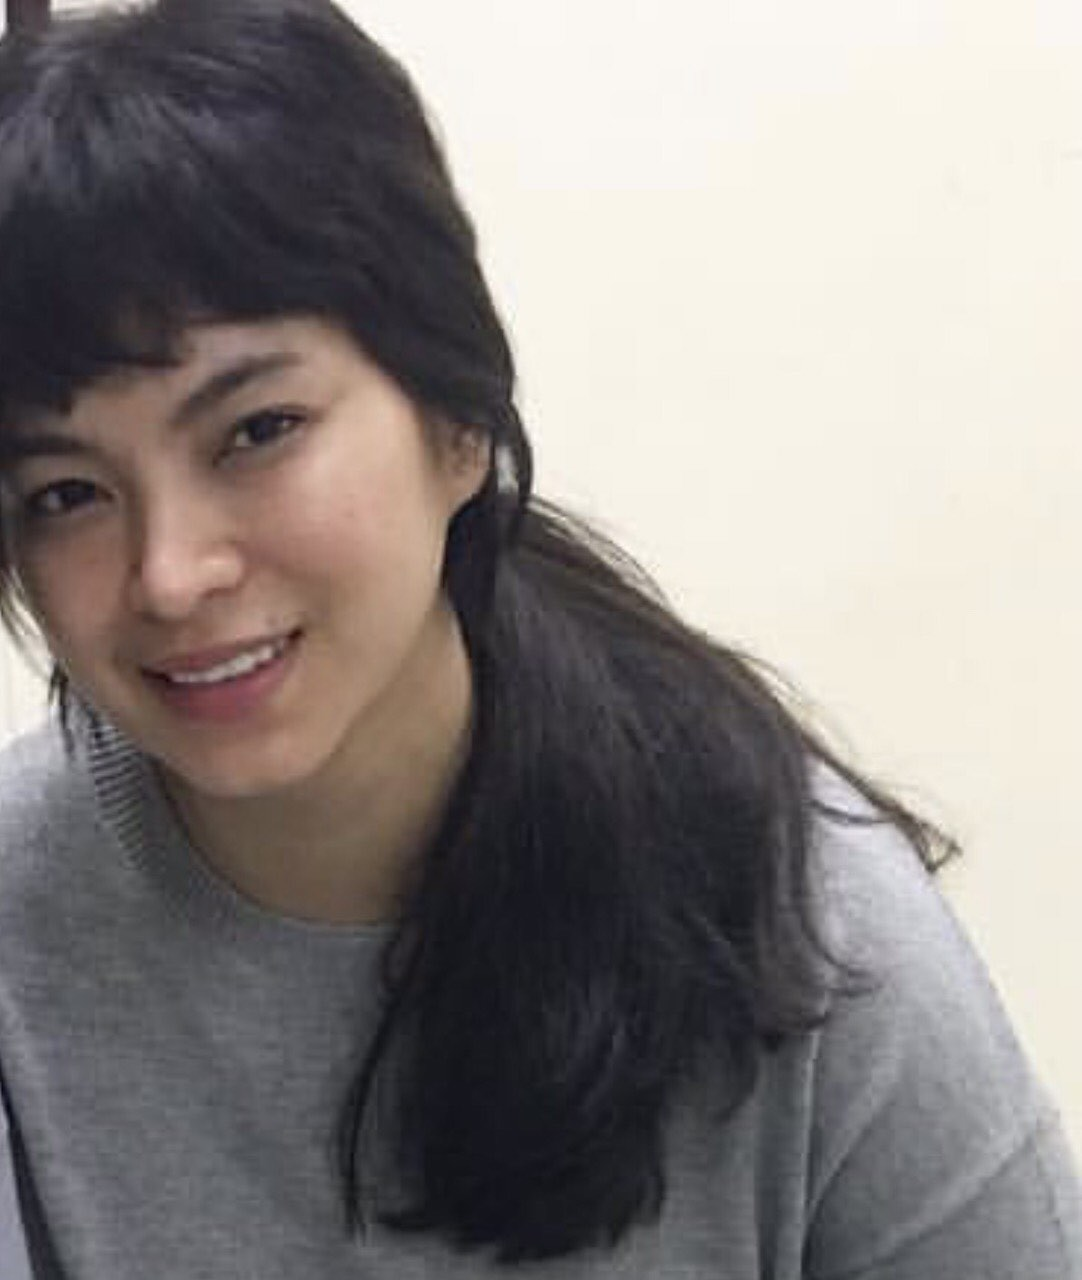 Astonishing Fashion Pulis Angel Locsin Wears Wig To Hide Excessive Hair Fall Short Hairstyles For Black Women Fulllsitofus